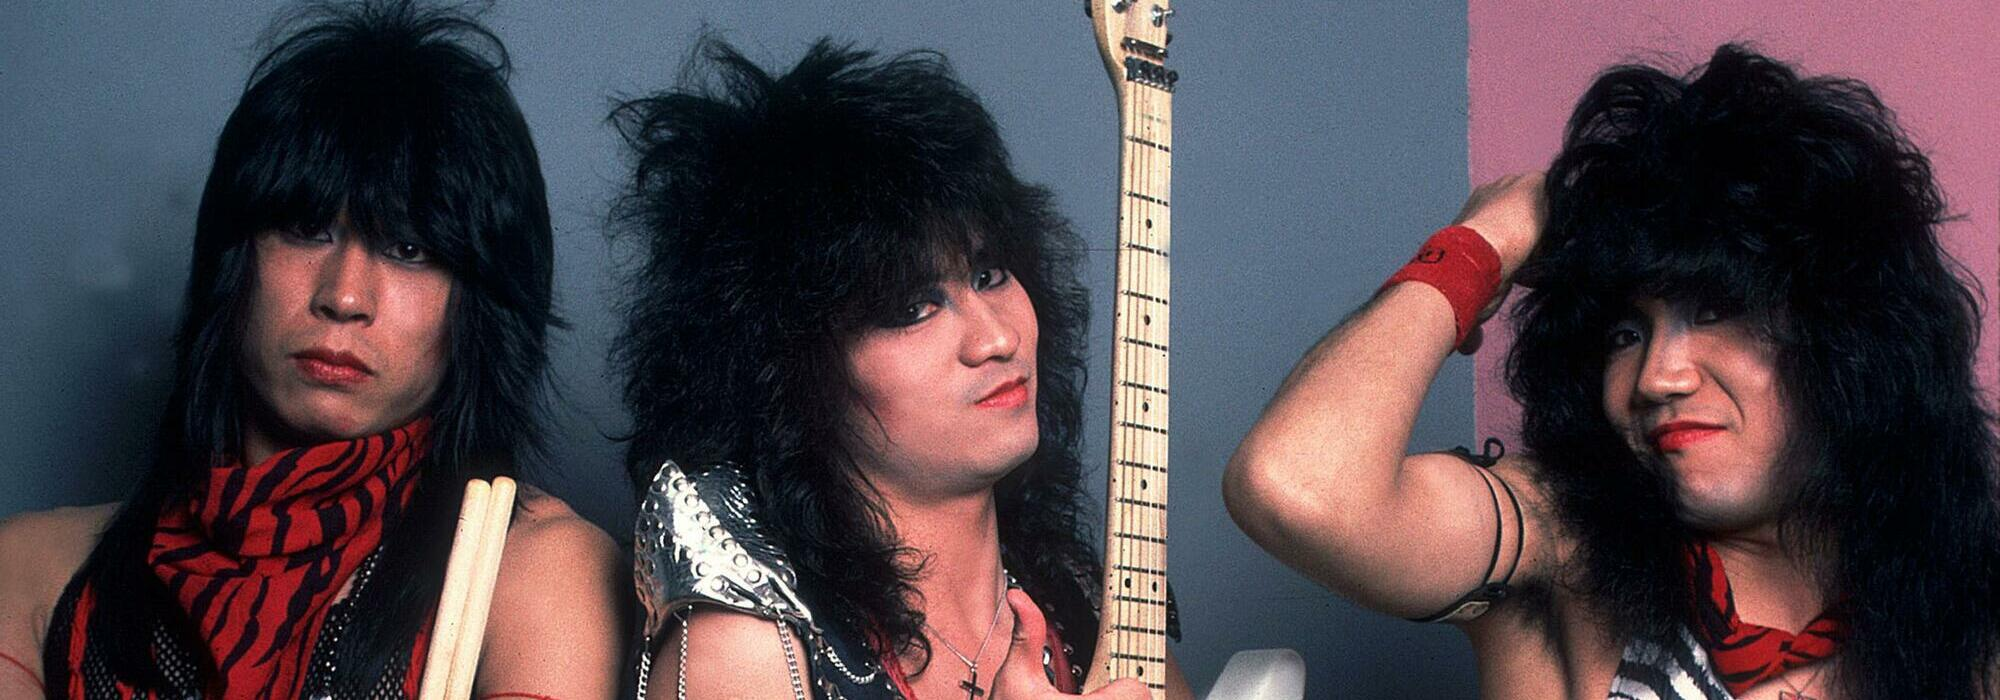 A Loudness live event